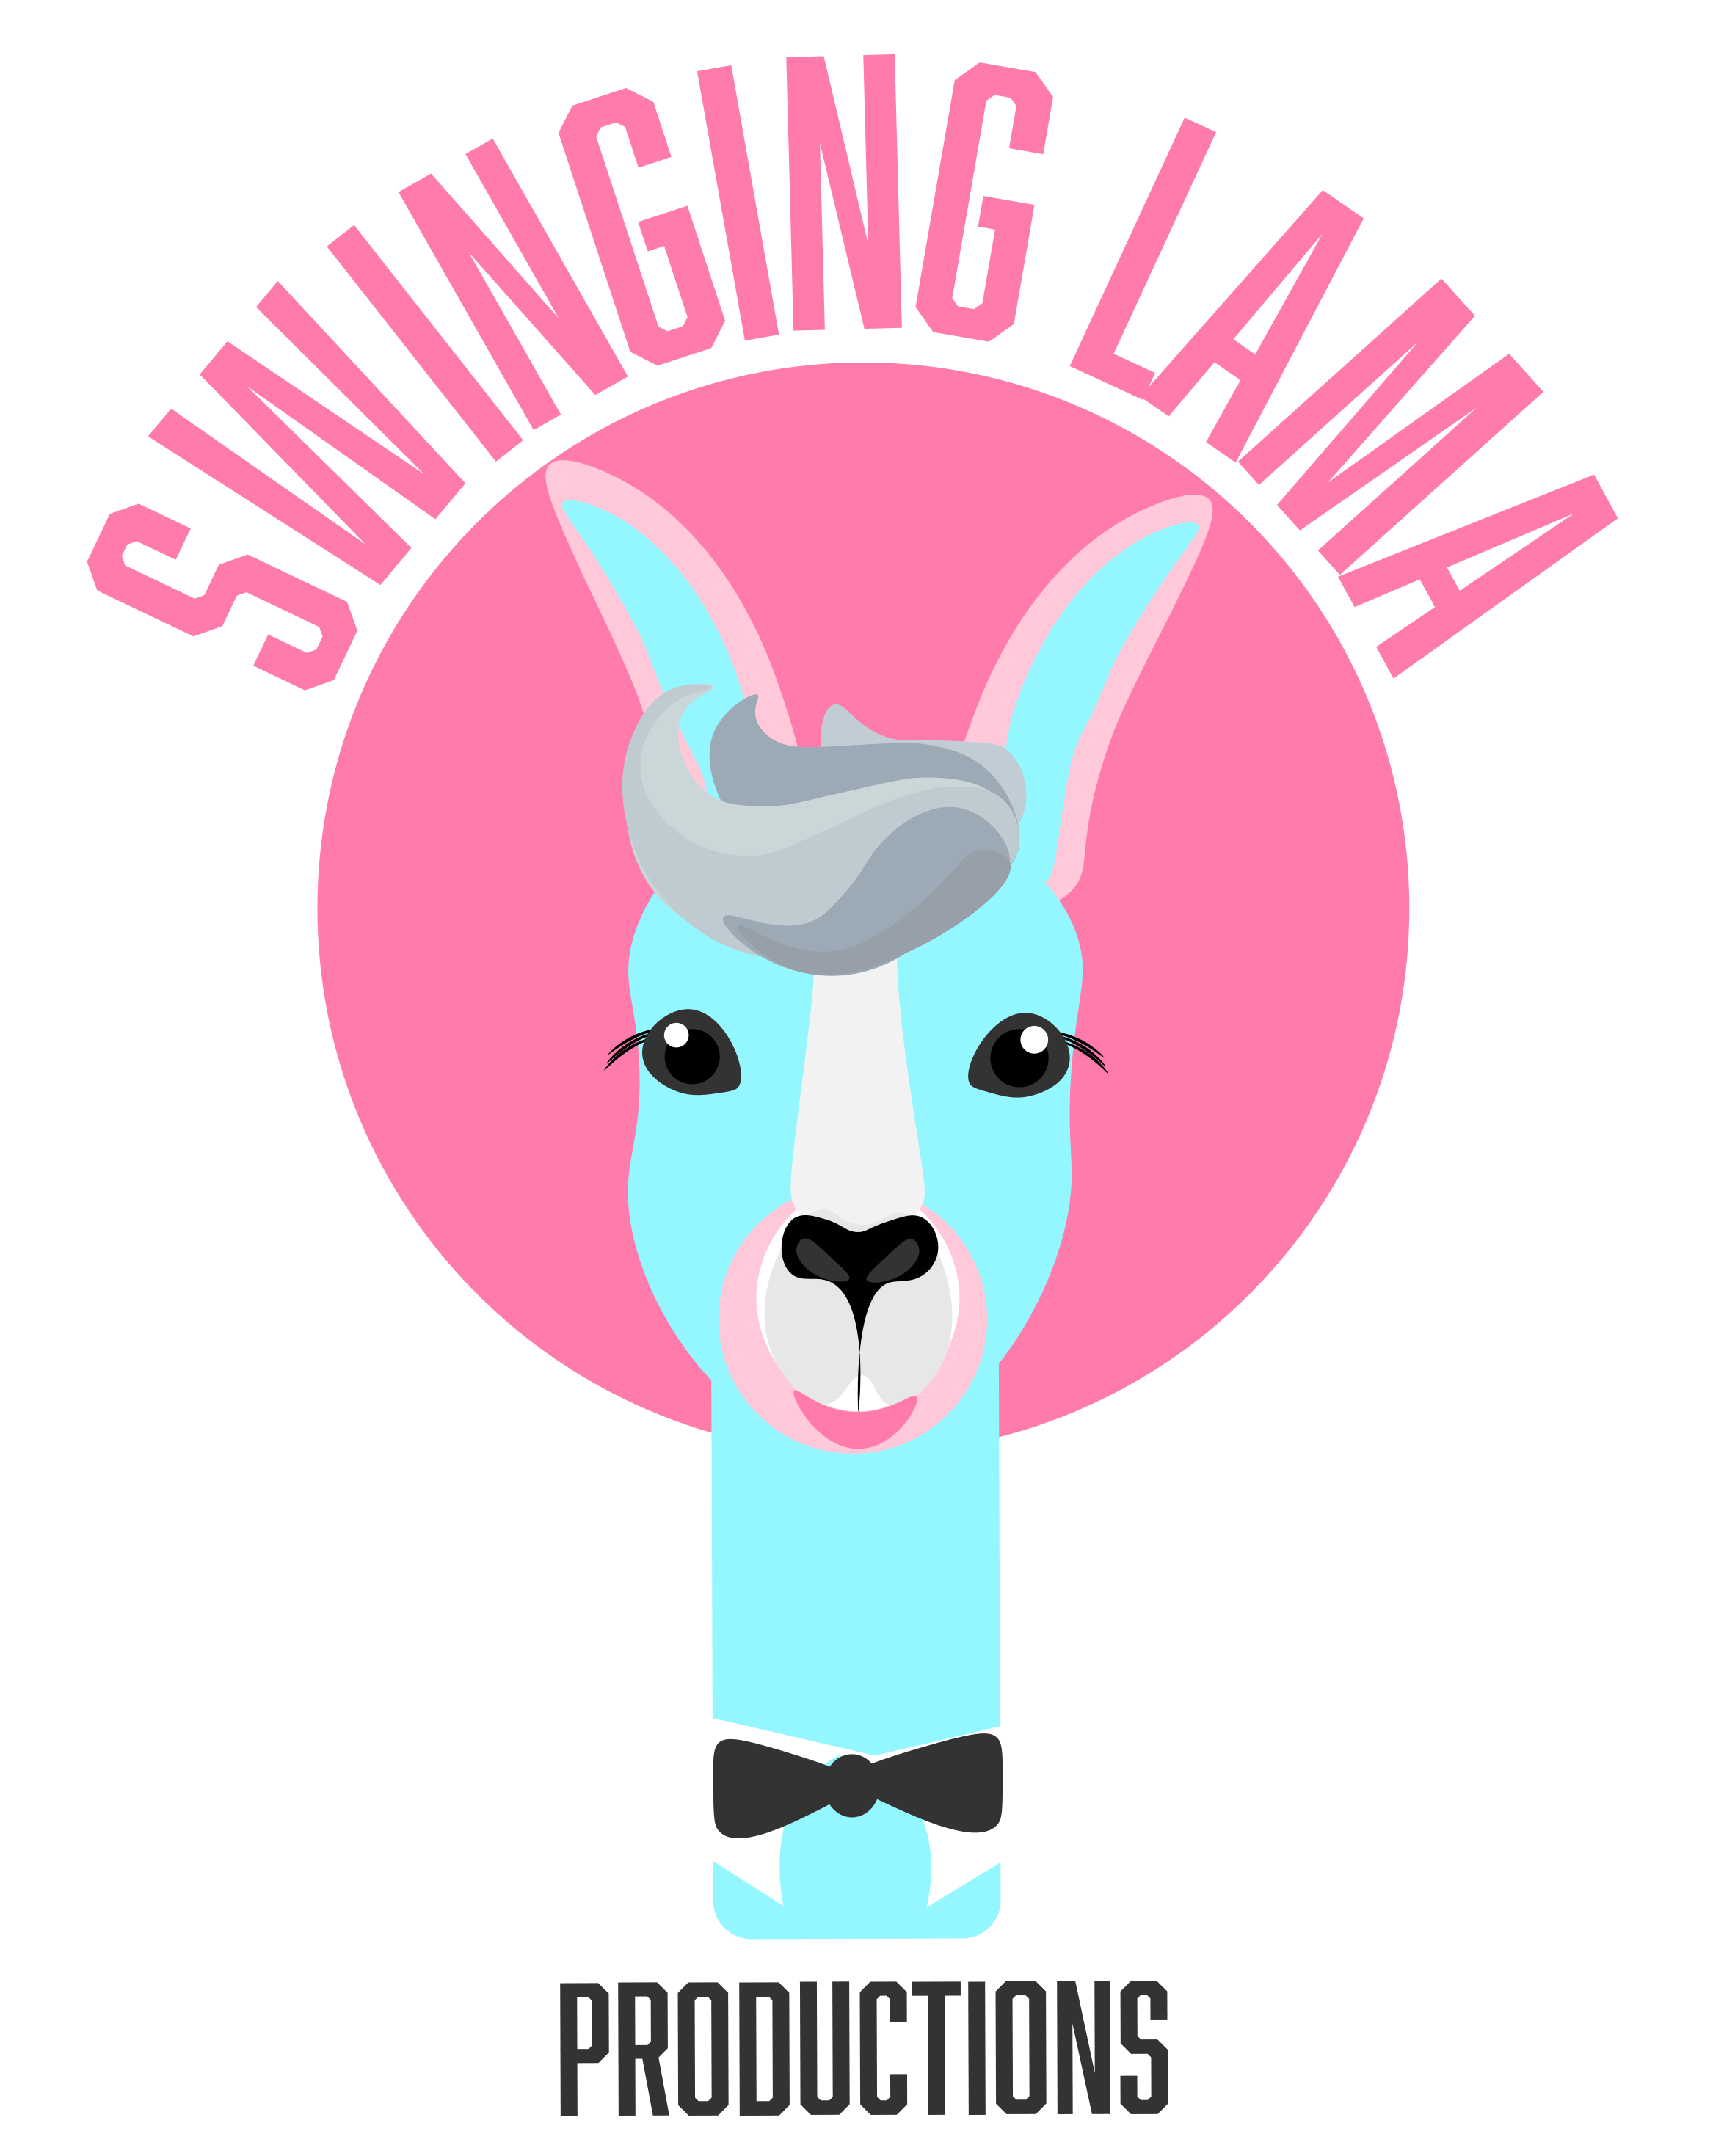 SWINGING LAMA PRODUCTIONS